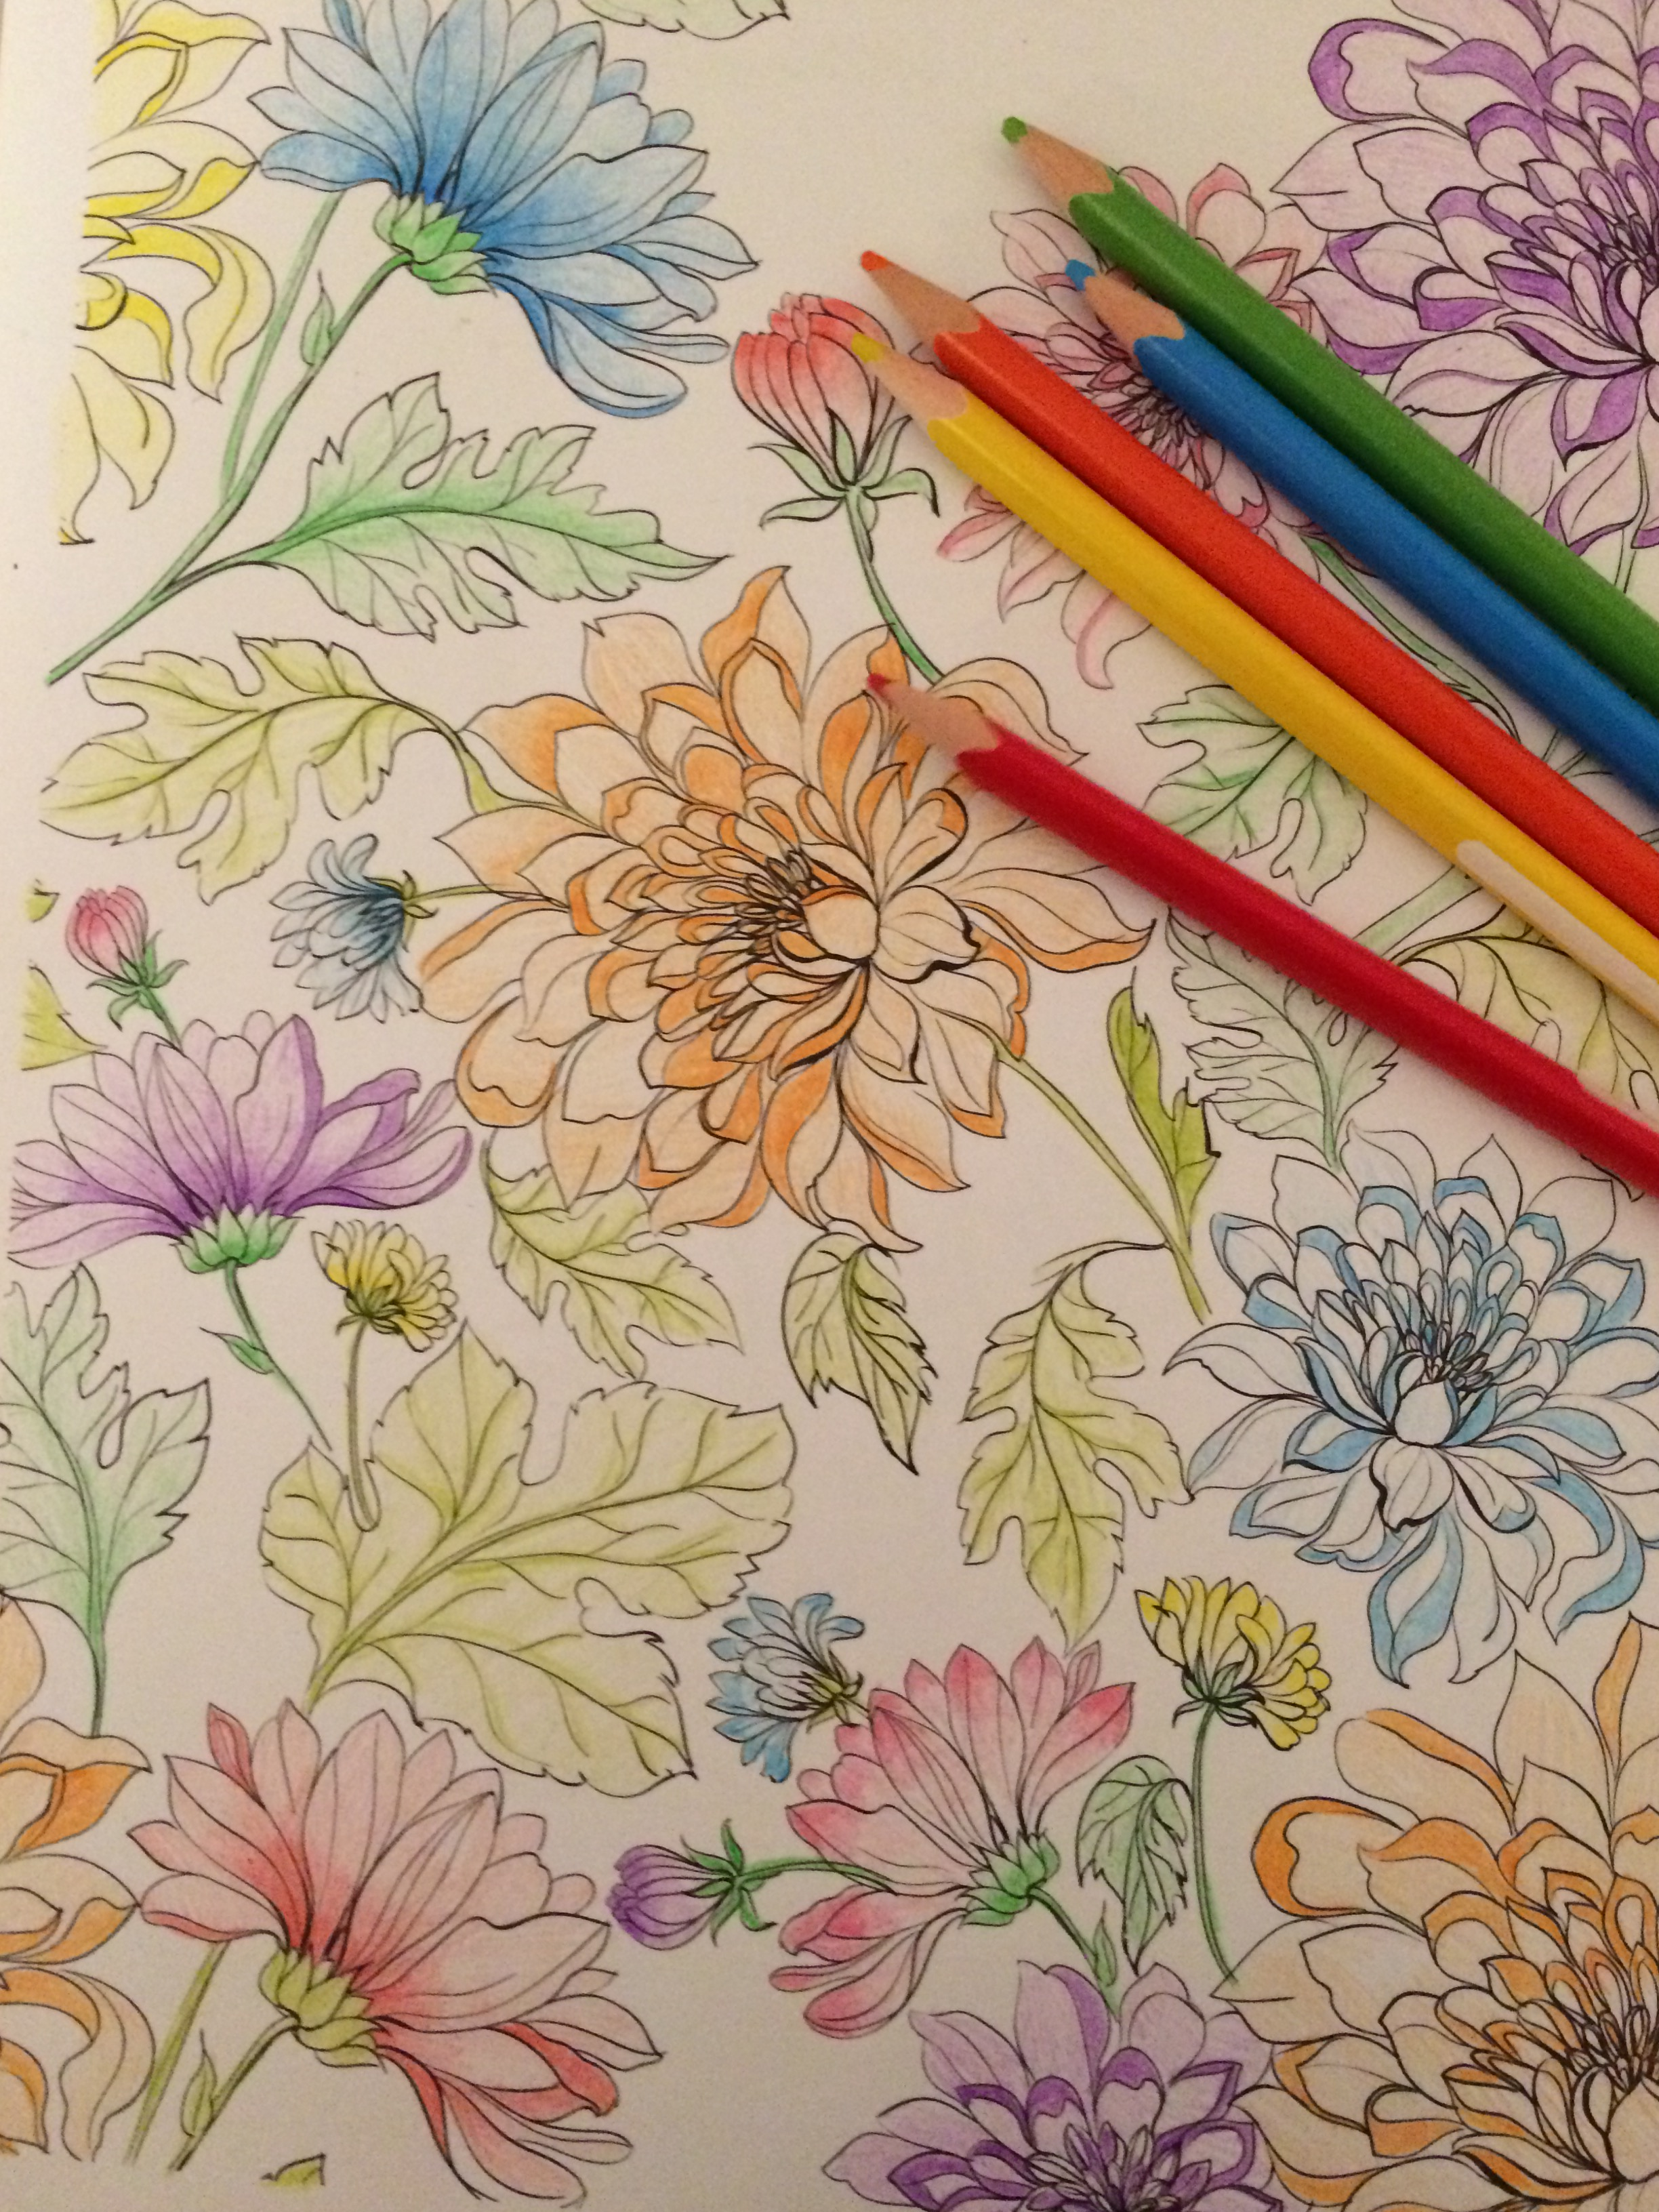 Coloriage Adulte Fini.Coloriage Pour Adultes La Detente Loin Des Ecrans Pretty Little